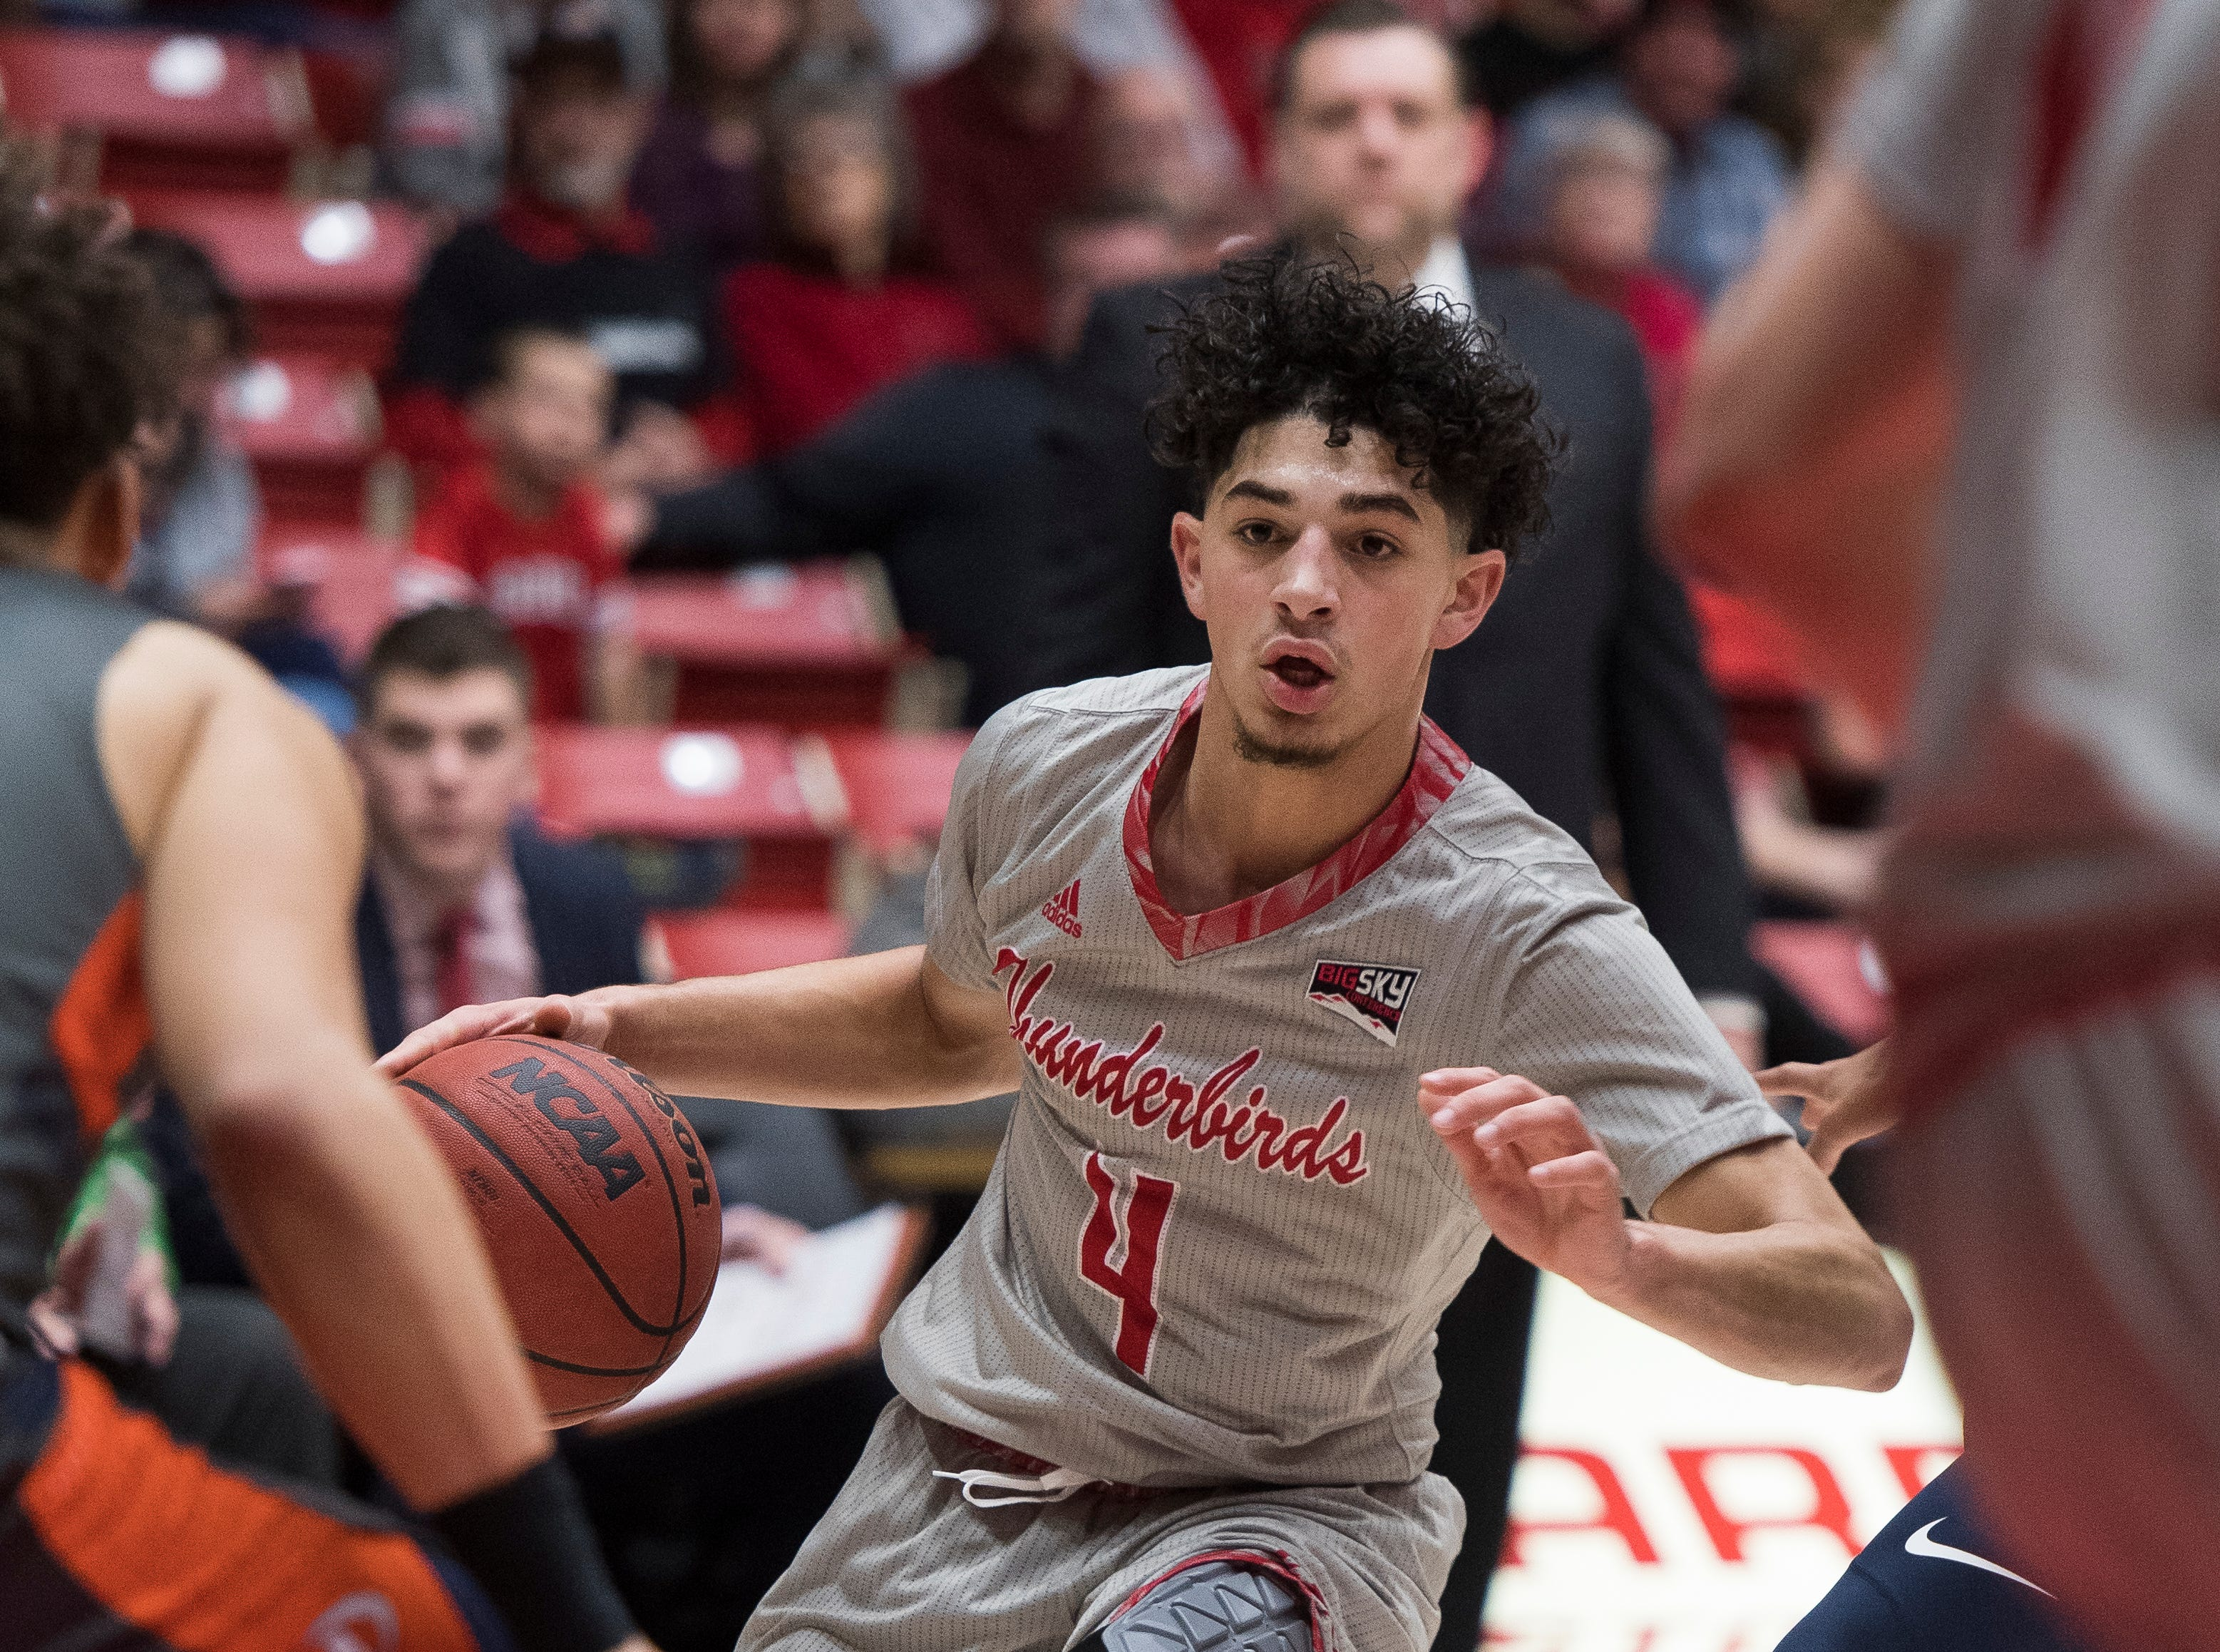 Southern Utah University sophomore Dre Marin (4) looks for a gap in the Pepperdine University defense during the game in the America First Event Center Saturday, December 15, 2018. SUU won in overtime, 78-69.